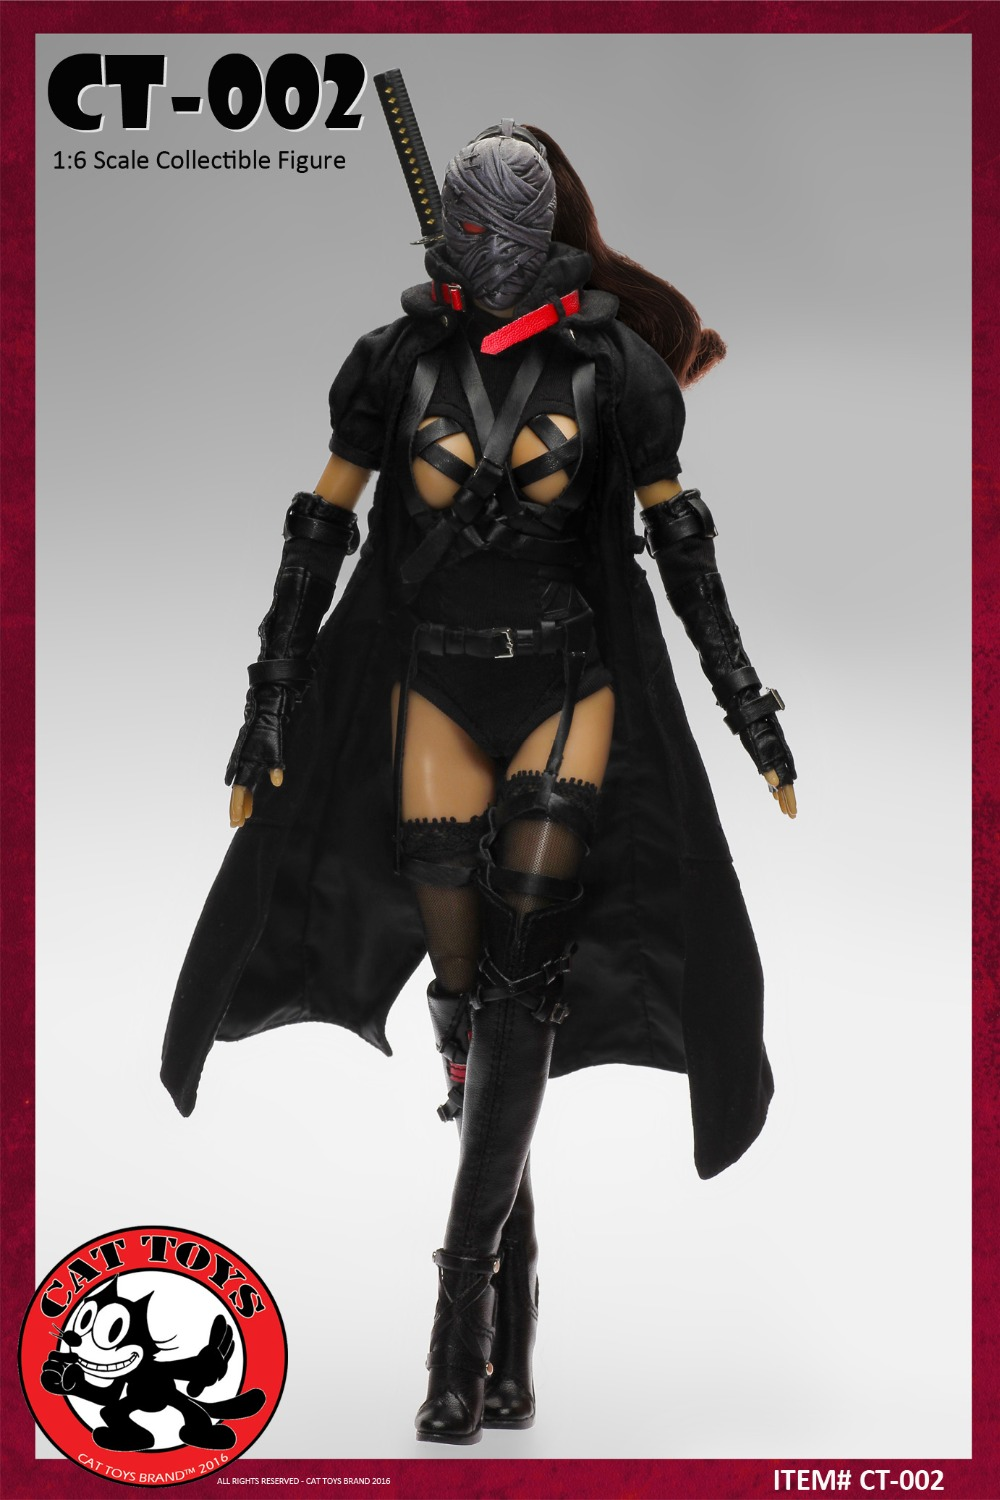 CAT TOYS CT002 Collectible Model plastic toy 1/6th scale female figure Dark Mourner 12 Action figure doll 1 6 scale model metal gear solid v the phantom d dog diamond dog about 23cm collectible figure model toy gift